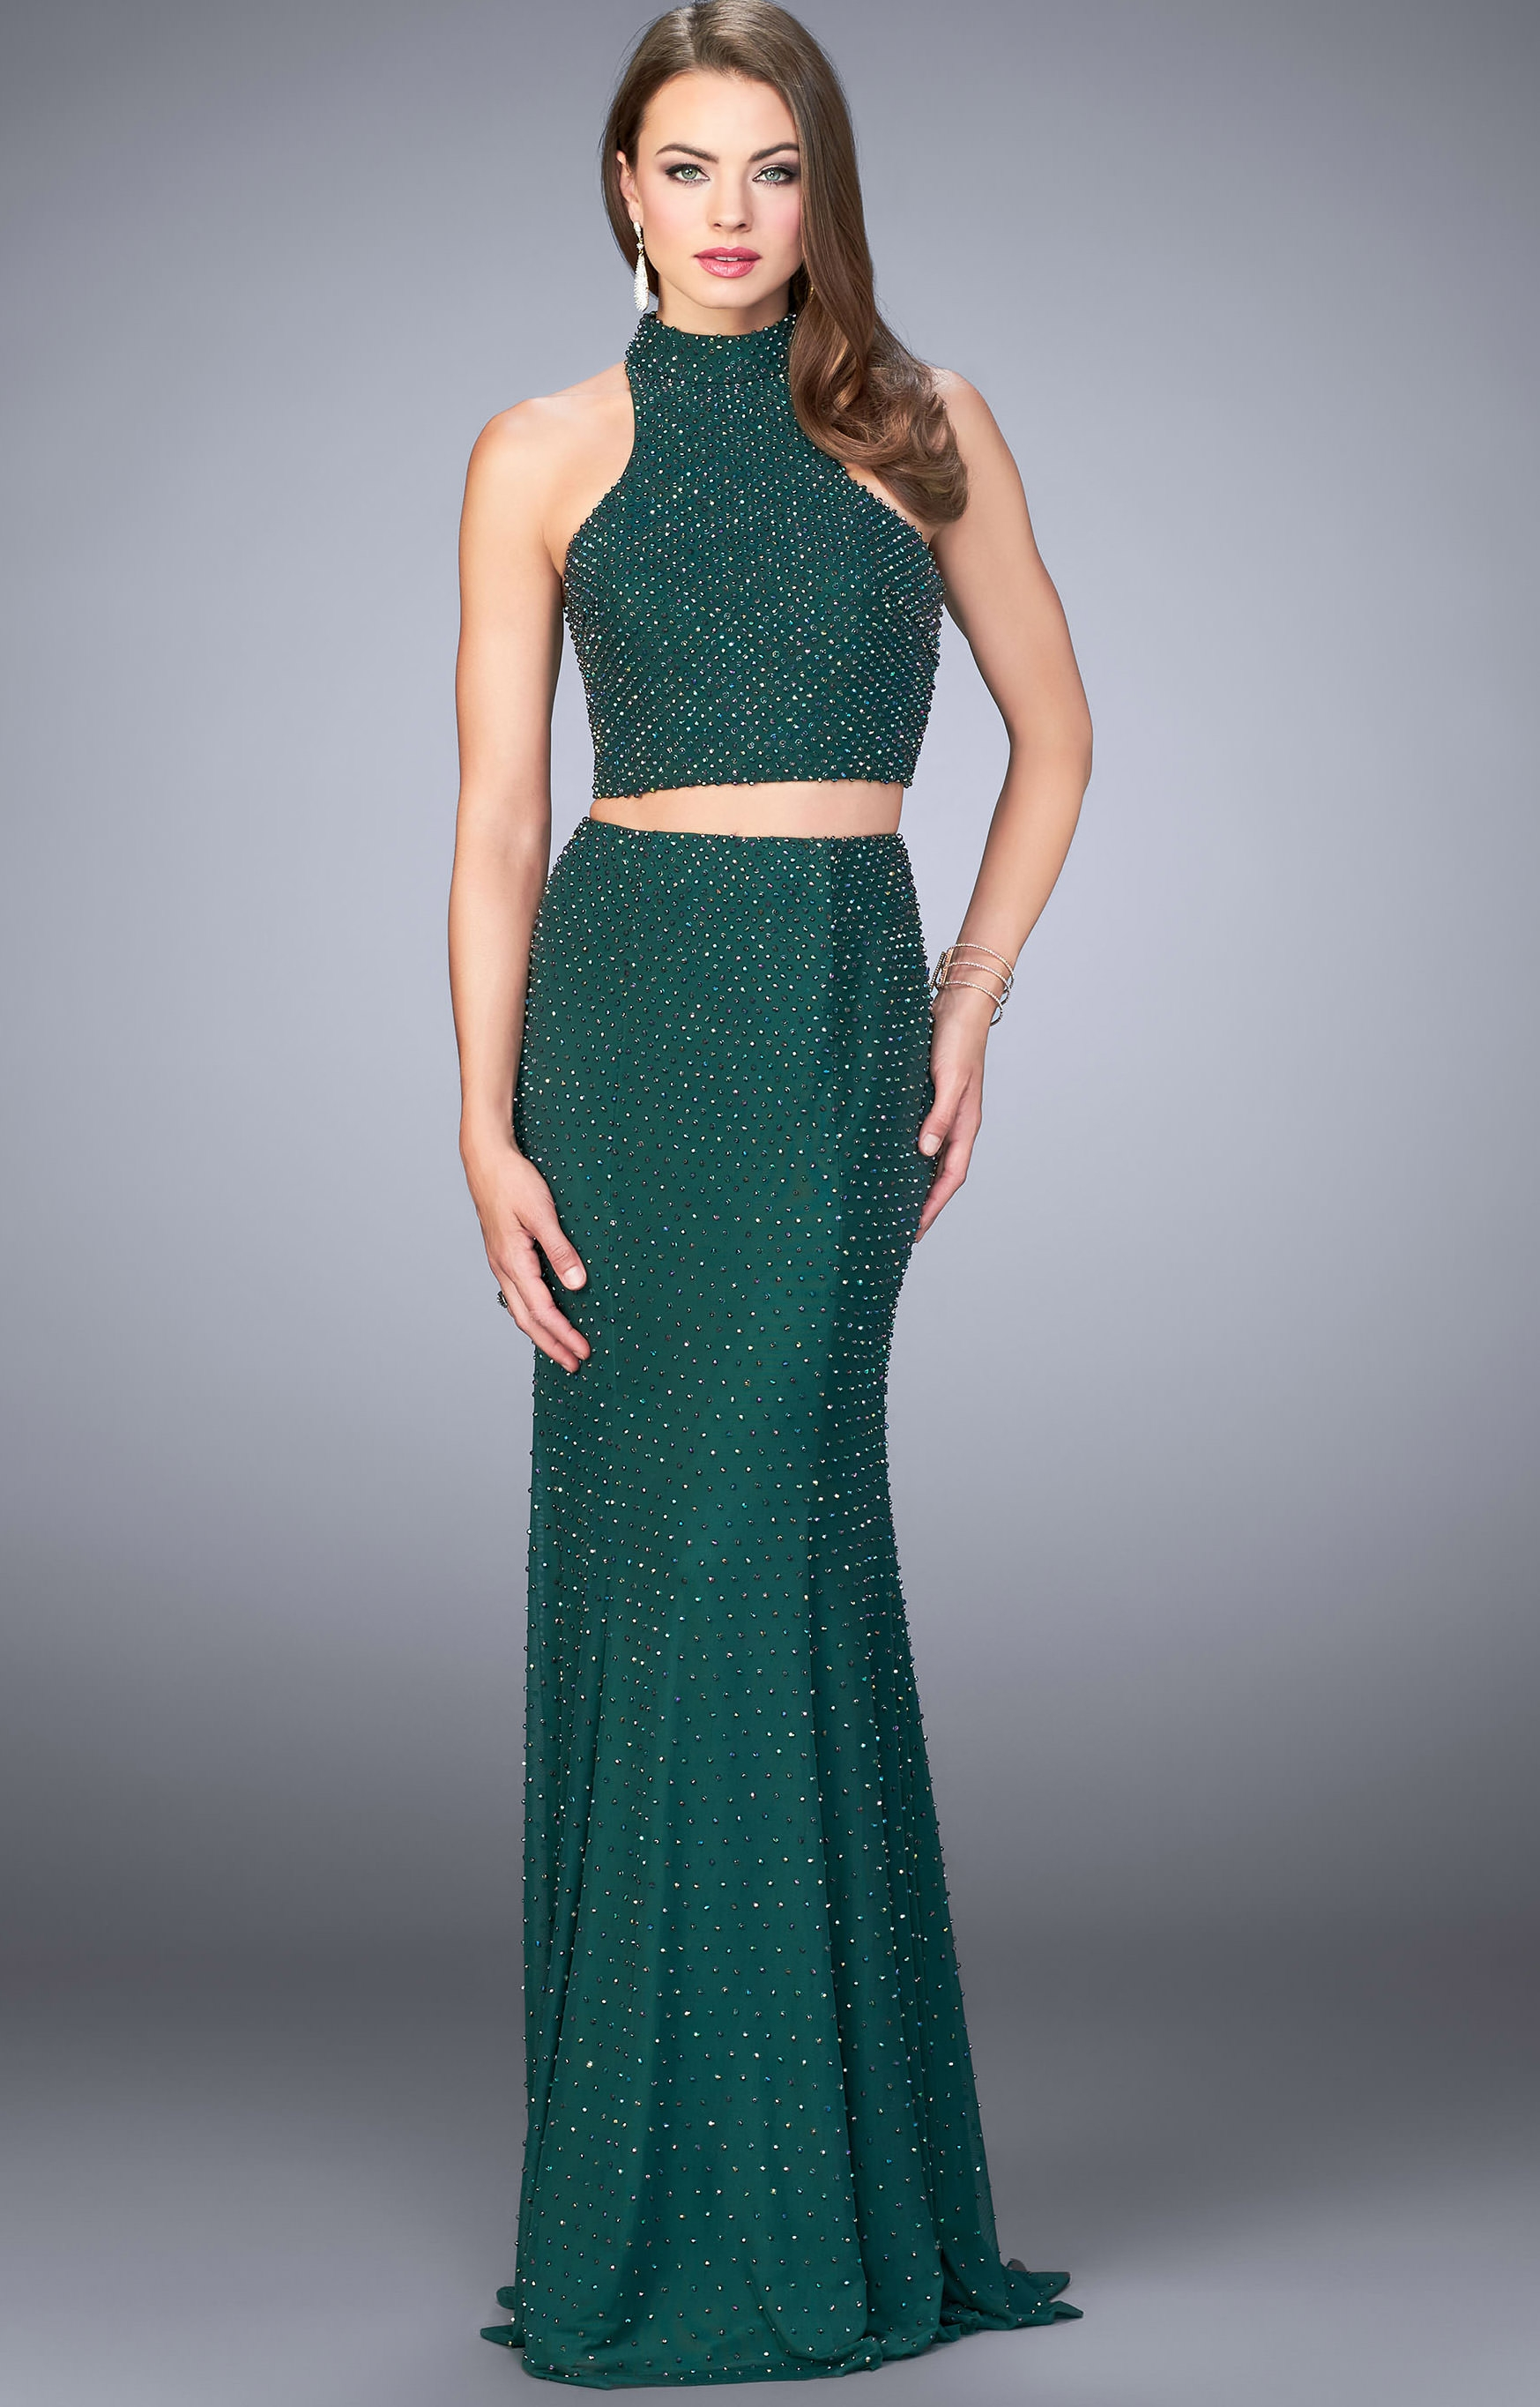 La Femme 24158 - Beaded Two-Piece Dress with Halter Top Prom Dress